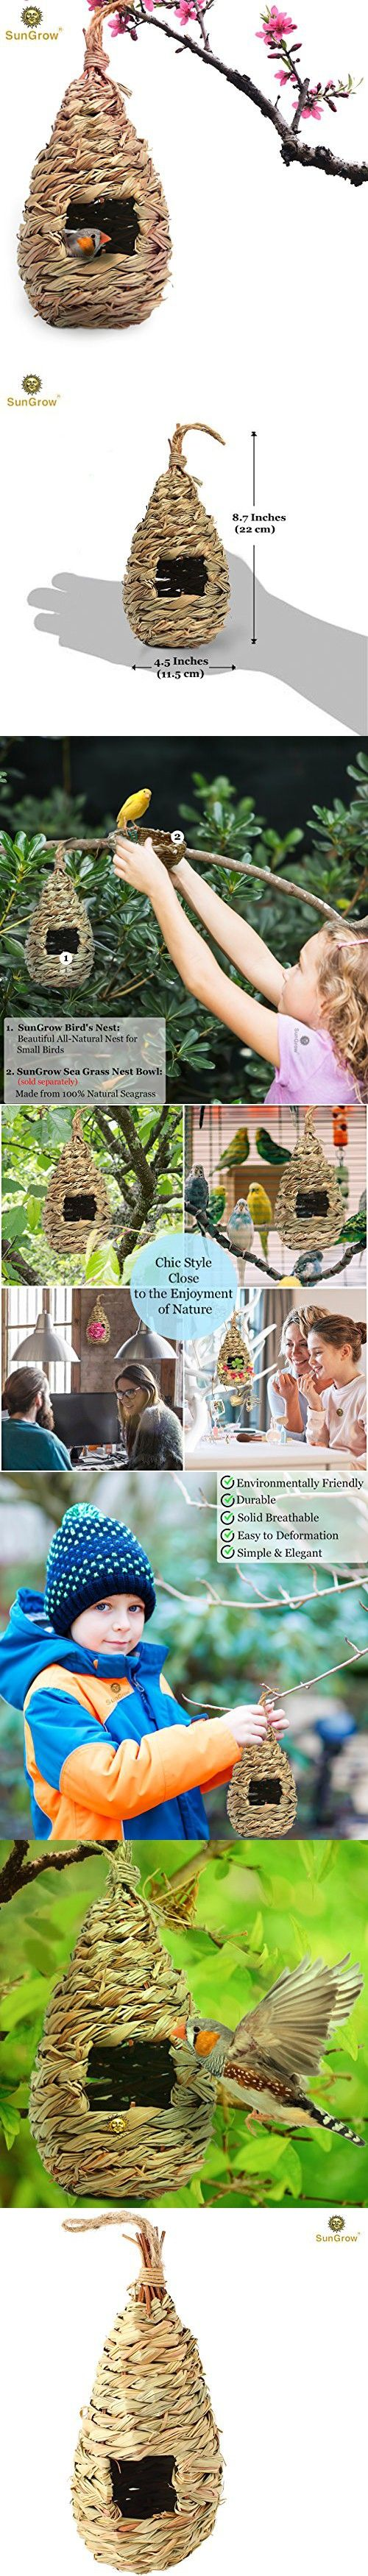 Hand-Woven Teardrop Shaped Grass Bird Hut by SunGrow - 100% Natural Fiber - Cozy resting place for birds - Provides shelter from cold weather - Bird hideaway from predators - Ideal for Finch & Canary